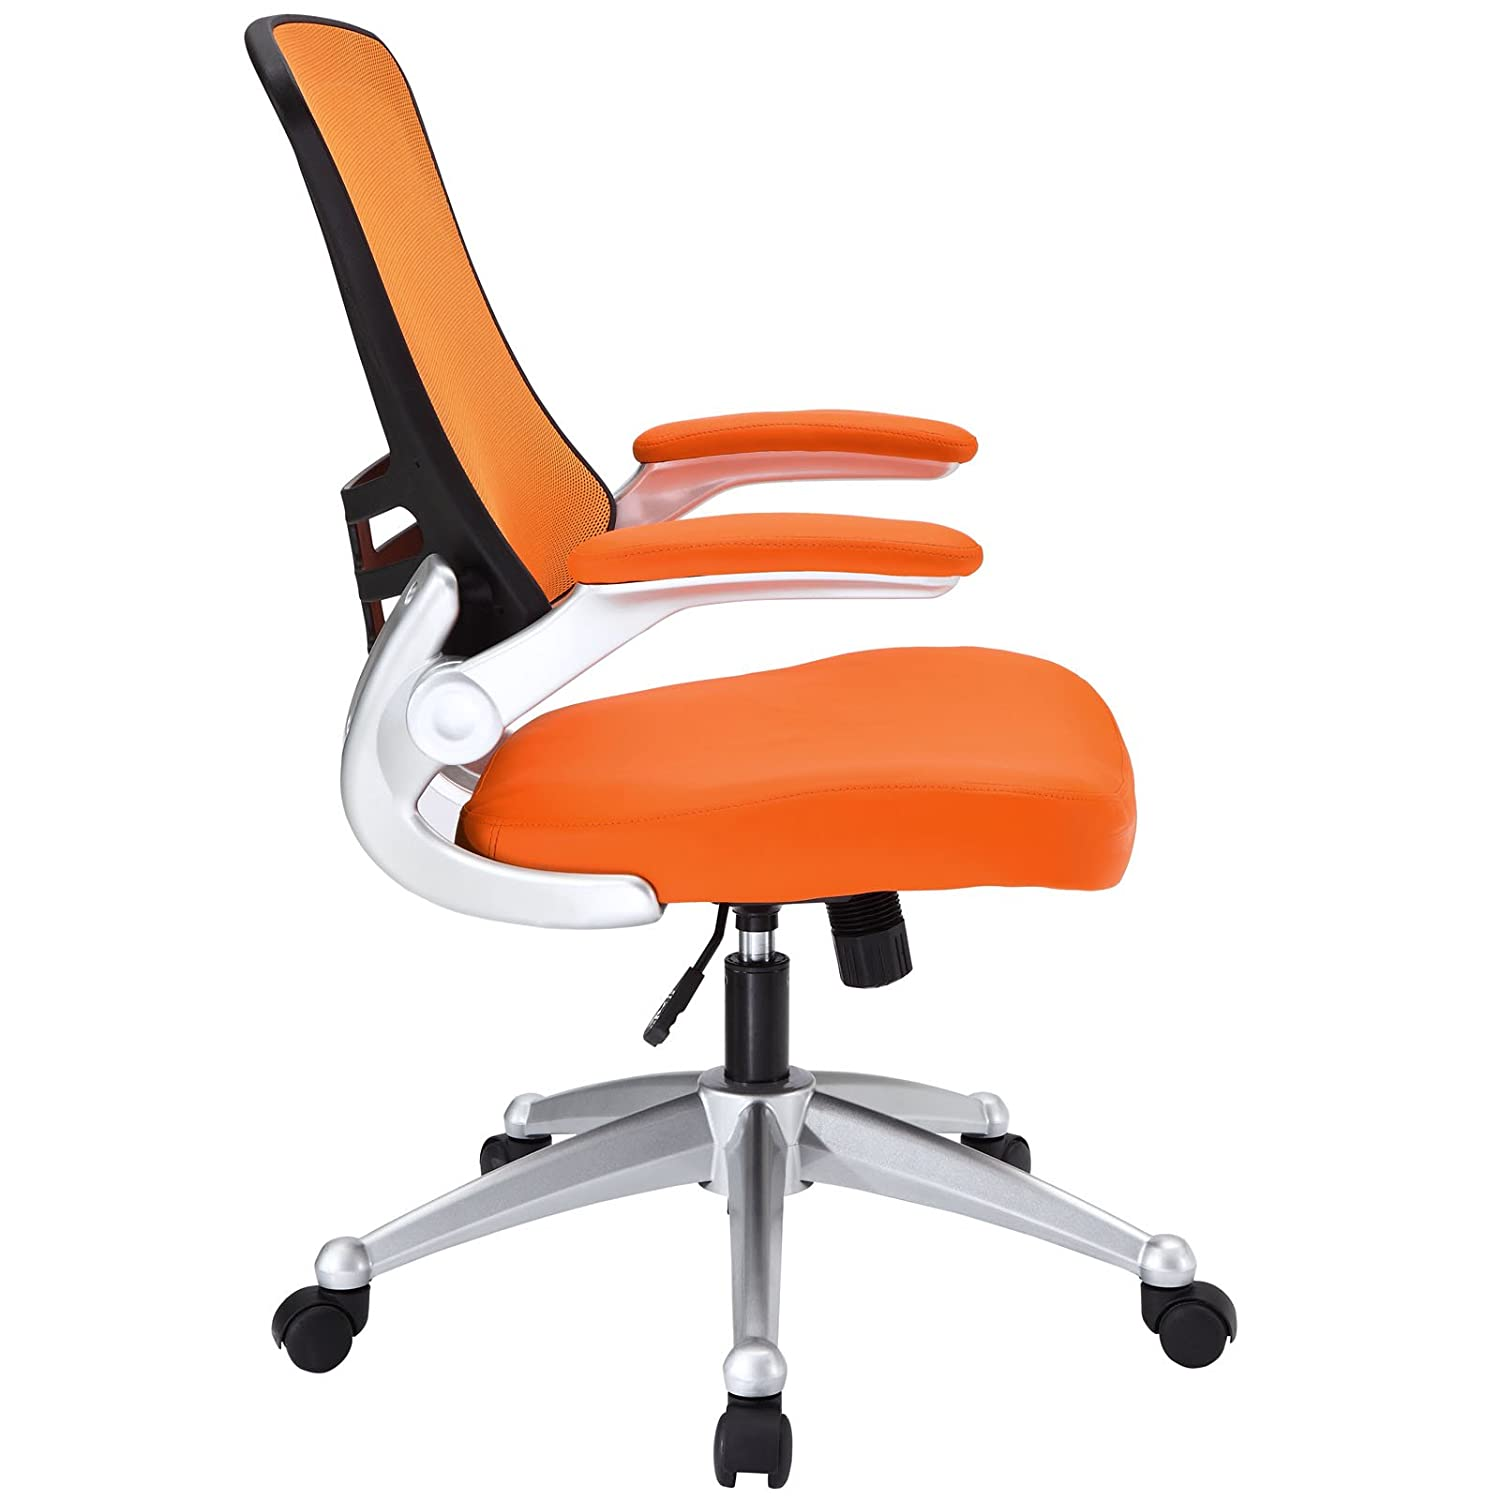 bungee gaming of fluffy and galaxy without amazon computer big large desk adorable tall for by seating ikea full colorful chairs cheap wheels xl chair office best lovely fice size kneeling